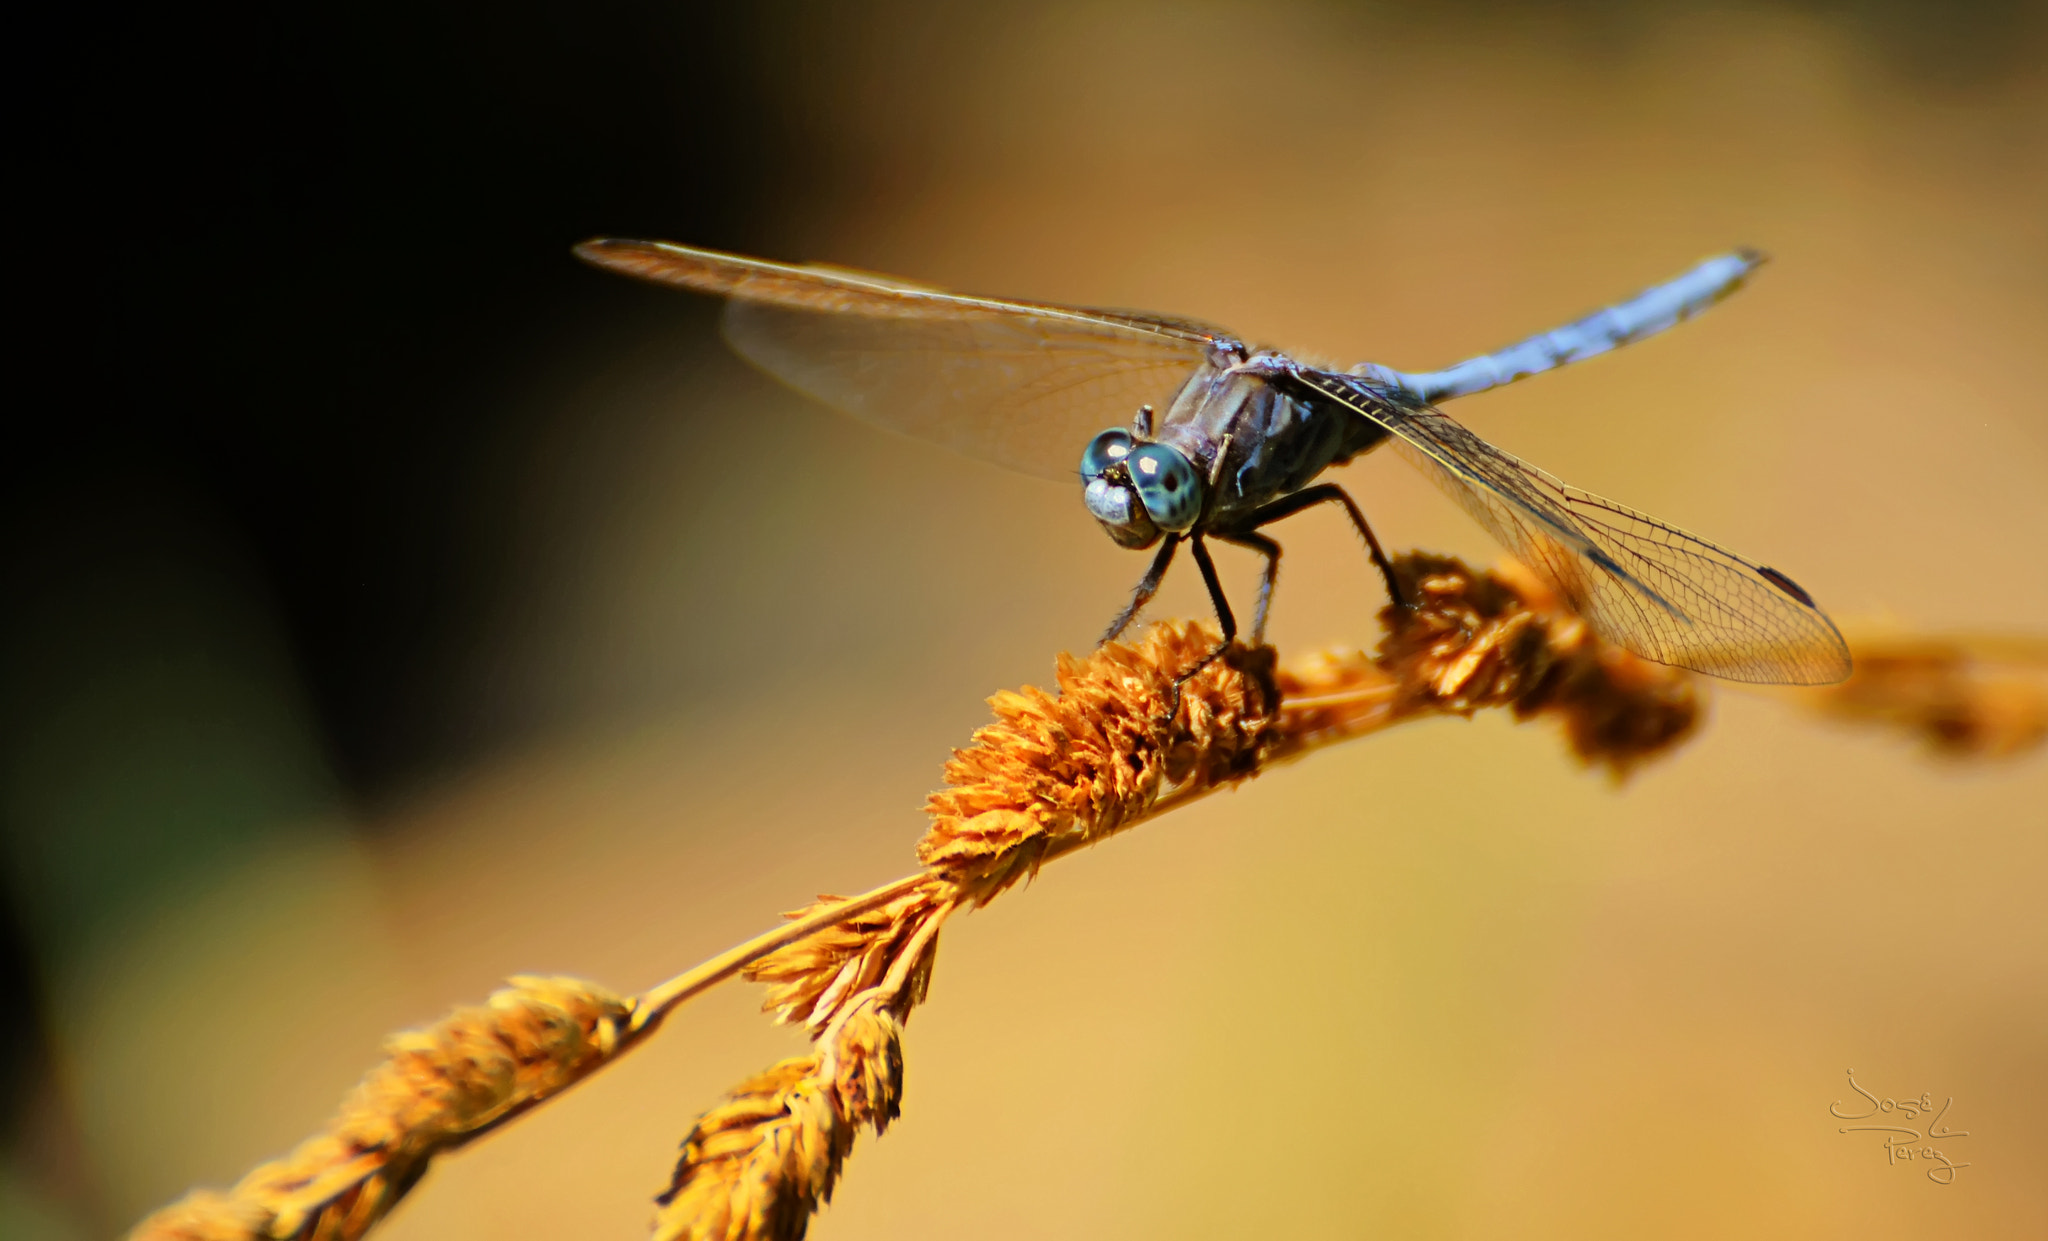 Photograph Dragonfly Blue by Jose Luis Perez on 500px